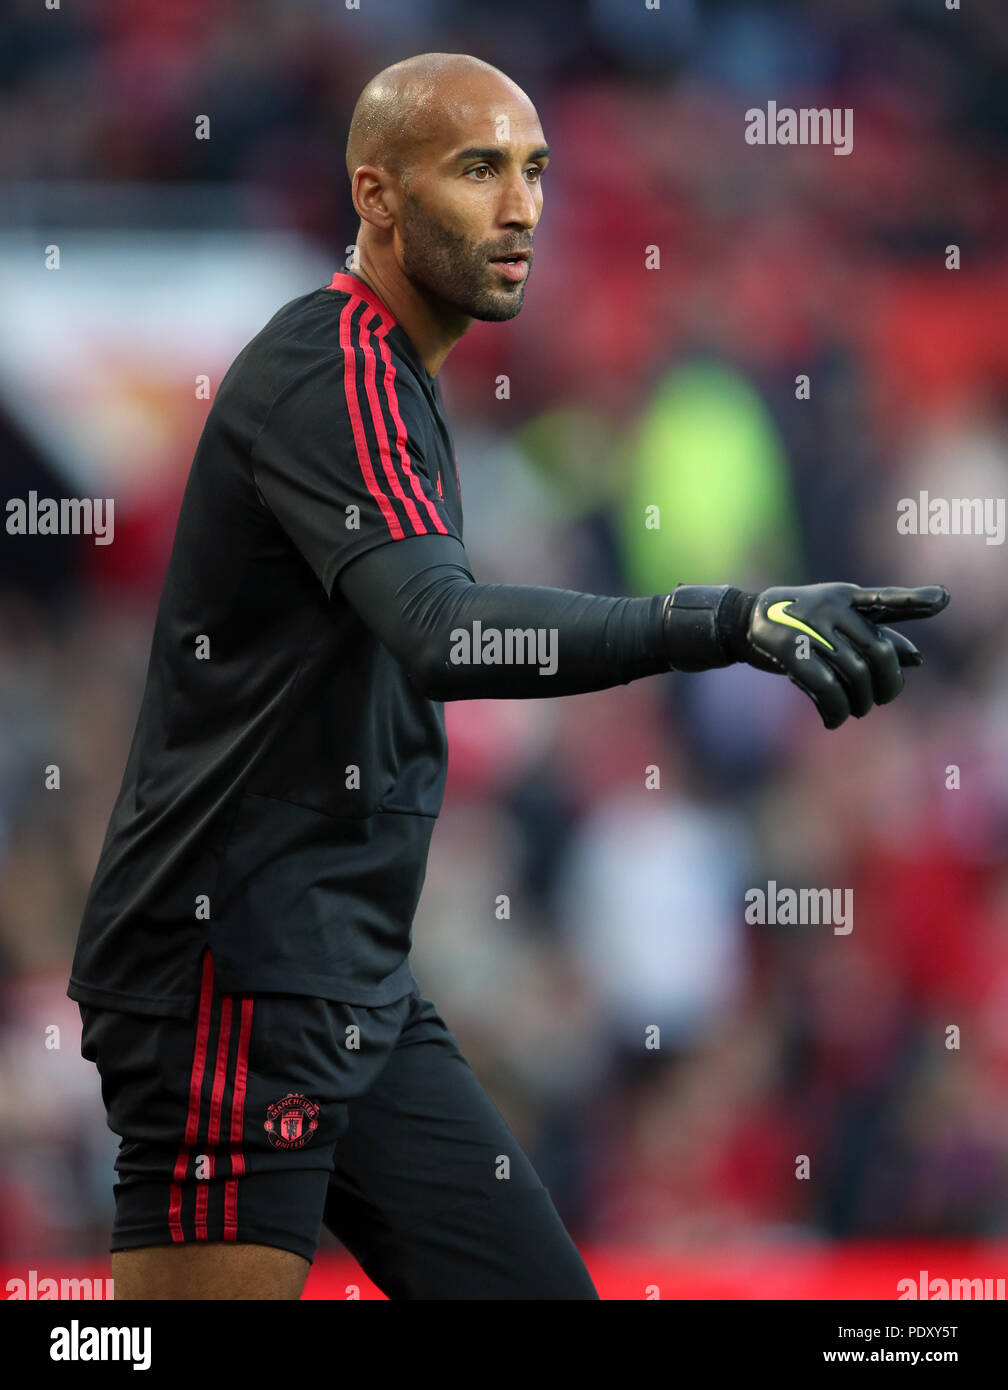 Manchester United Goalkeeper Lee Grant Before The Premier League Match At Old Trafford Manchester Press Association Photo Picture Date Friday August 10 2018 See Pa Story Soccer Man Utd Photo Credit Should